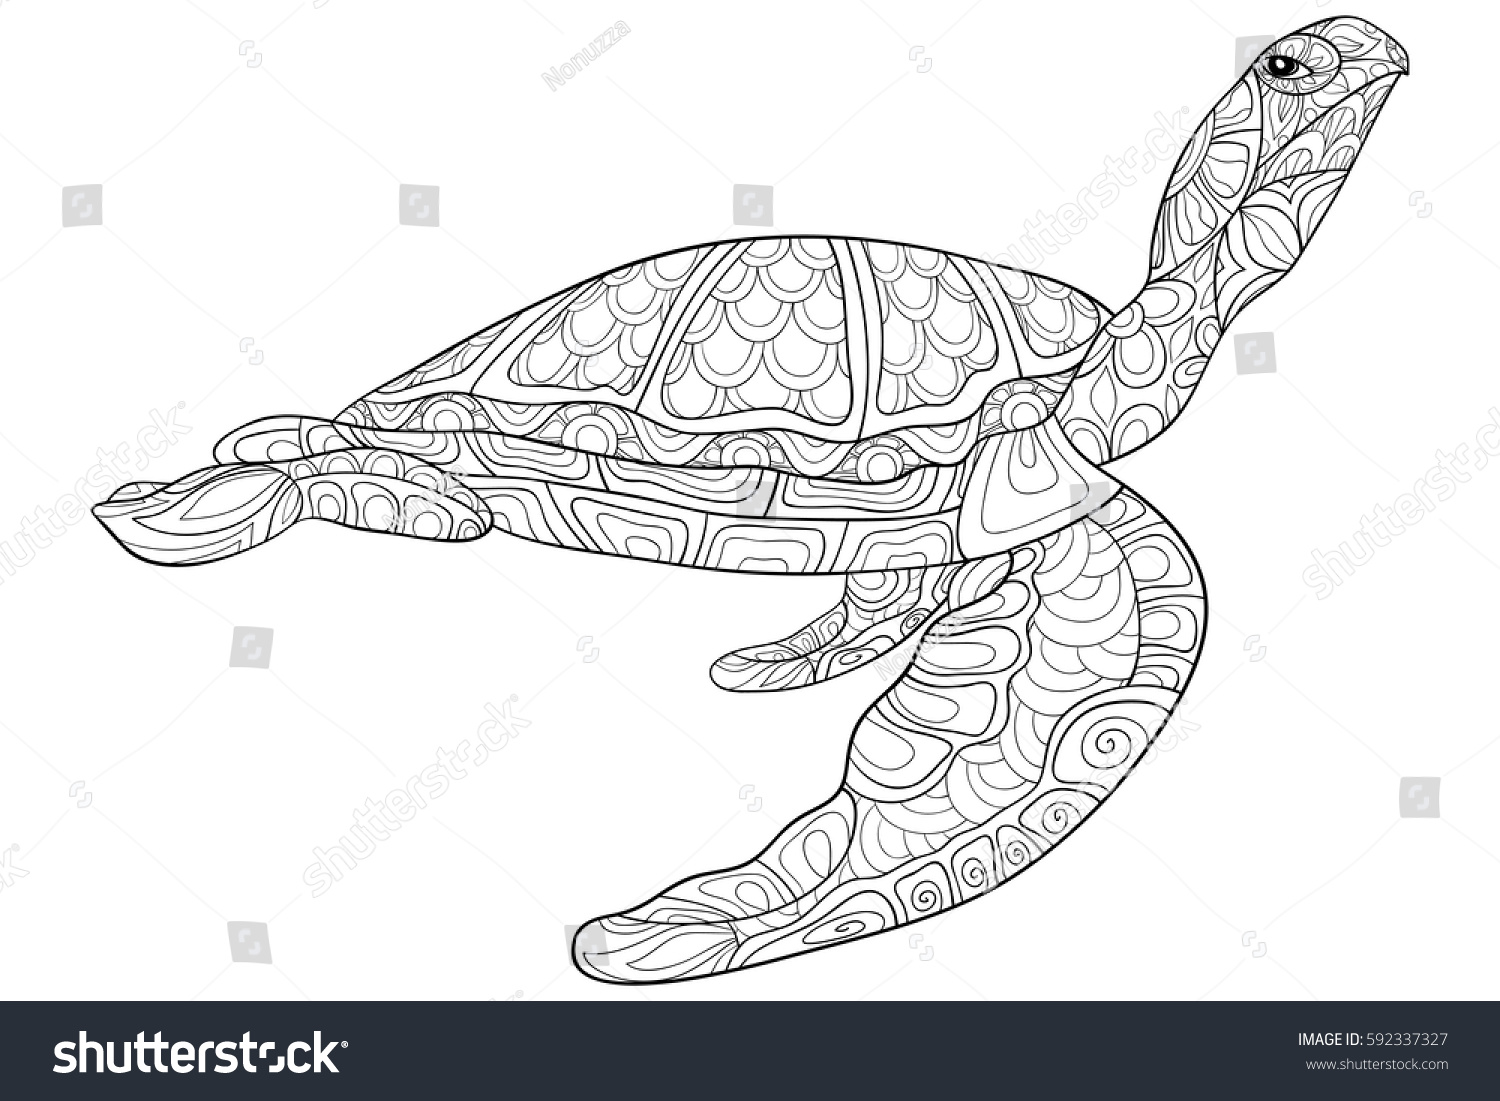 Zen ocean colouring book - Adult Coloring Book Turtle Zen Art Style Doodle Pages For Coloring